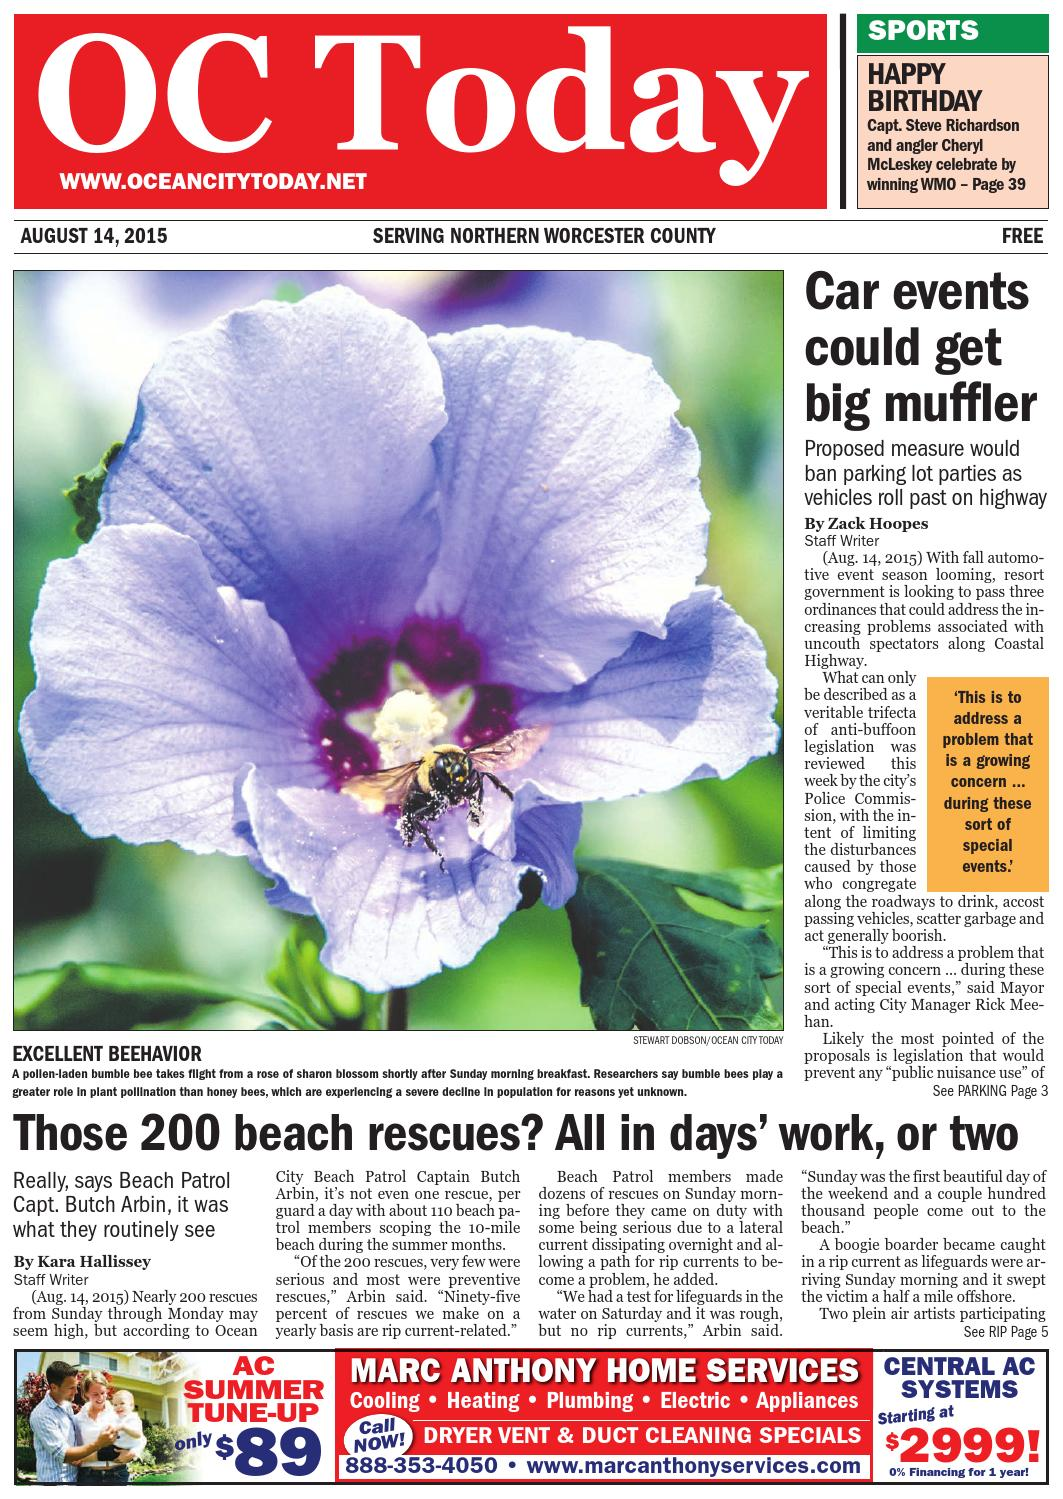 8/14/15 Ocean City Today by ocean city today - issuu